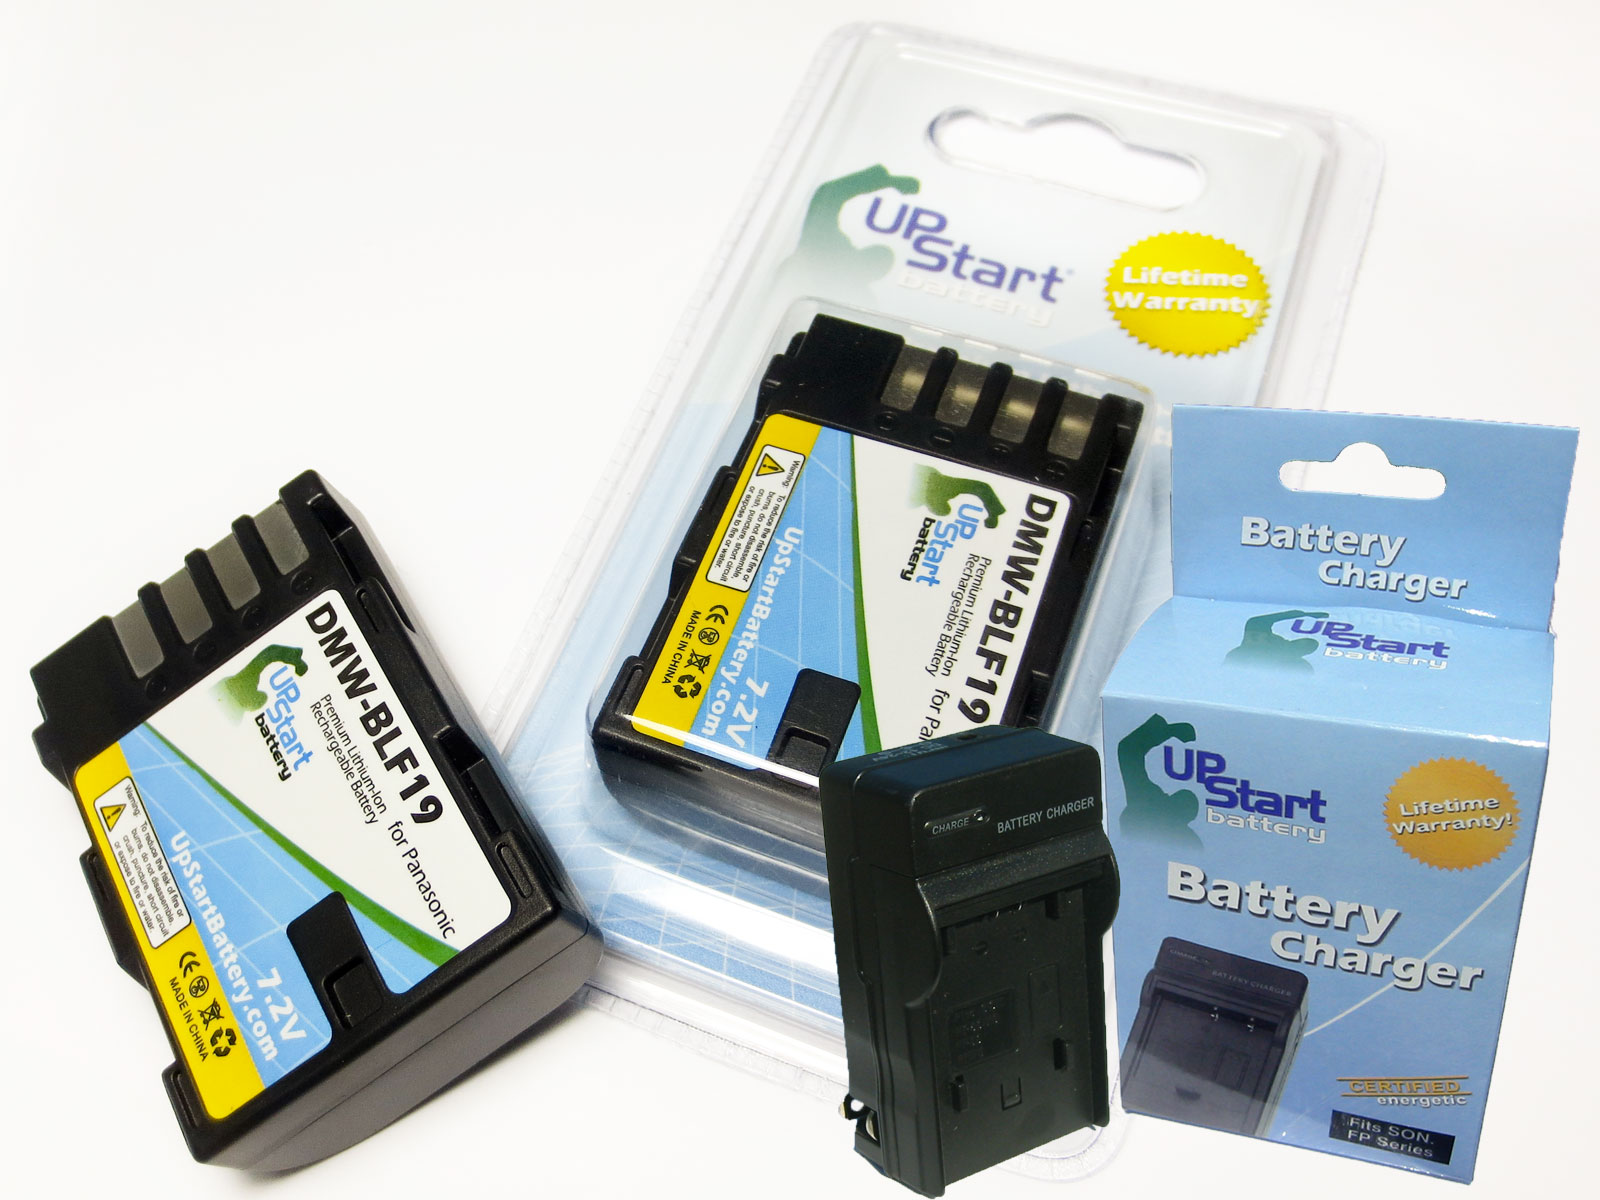 UpStart Battery 2x Pack - Panasonic DMW-BLF19E Digital Camera Battery + Charger - Replacement Kit for Panasonic DMW-BLF19 at Sears.com